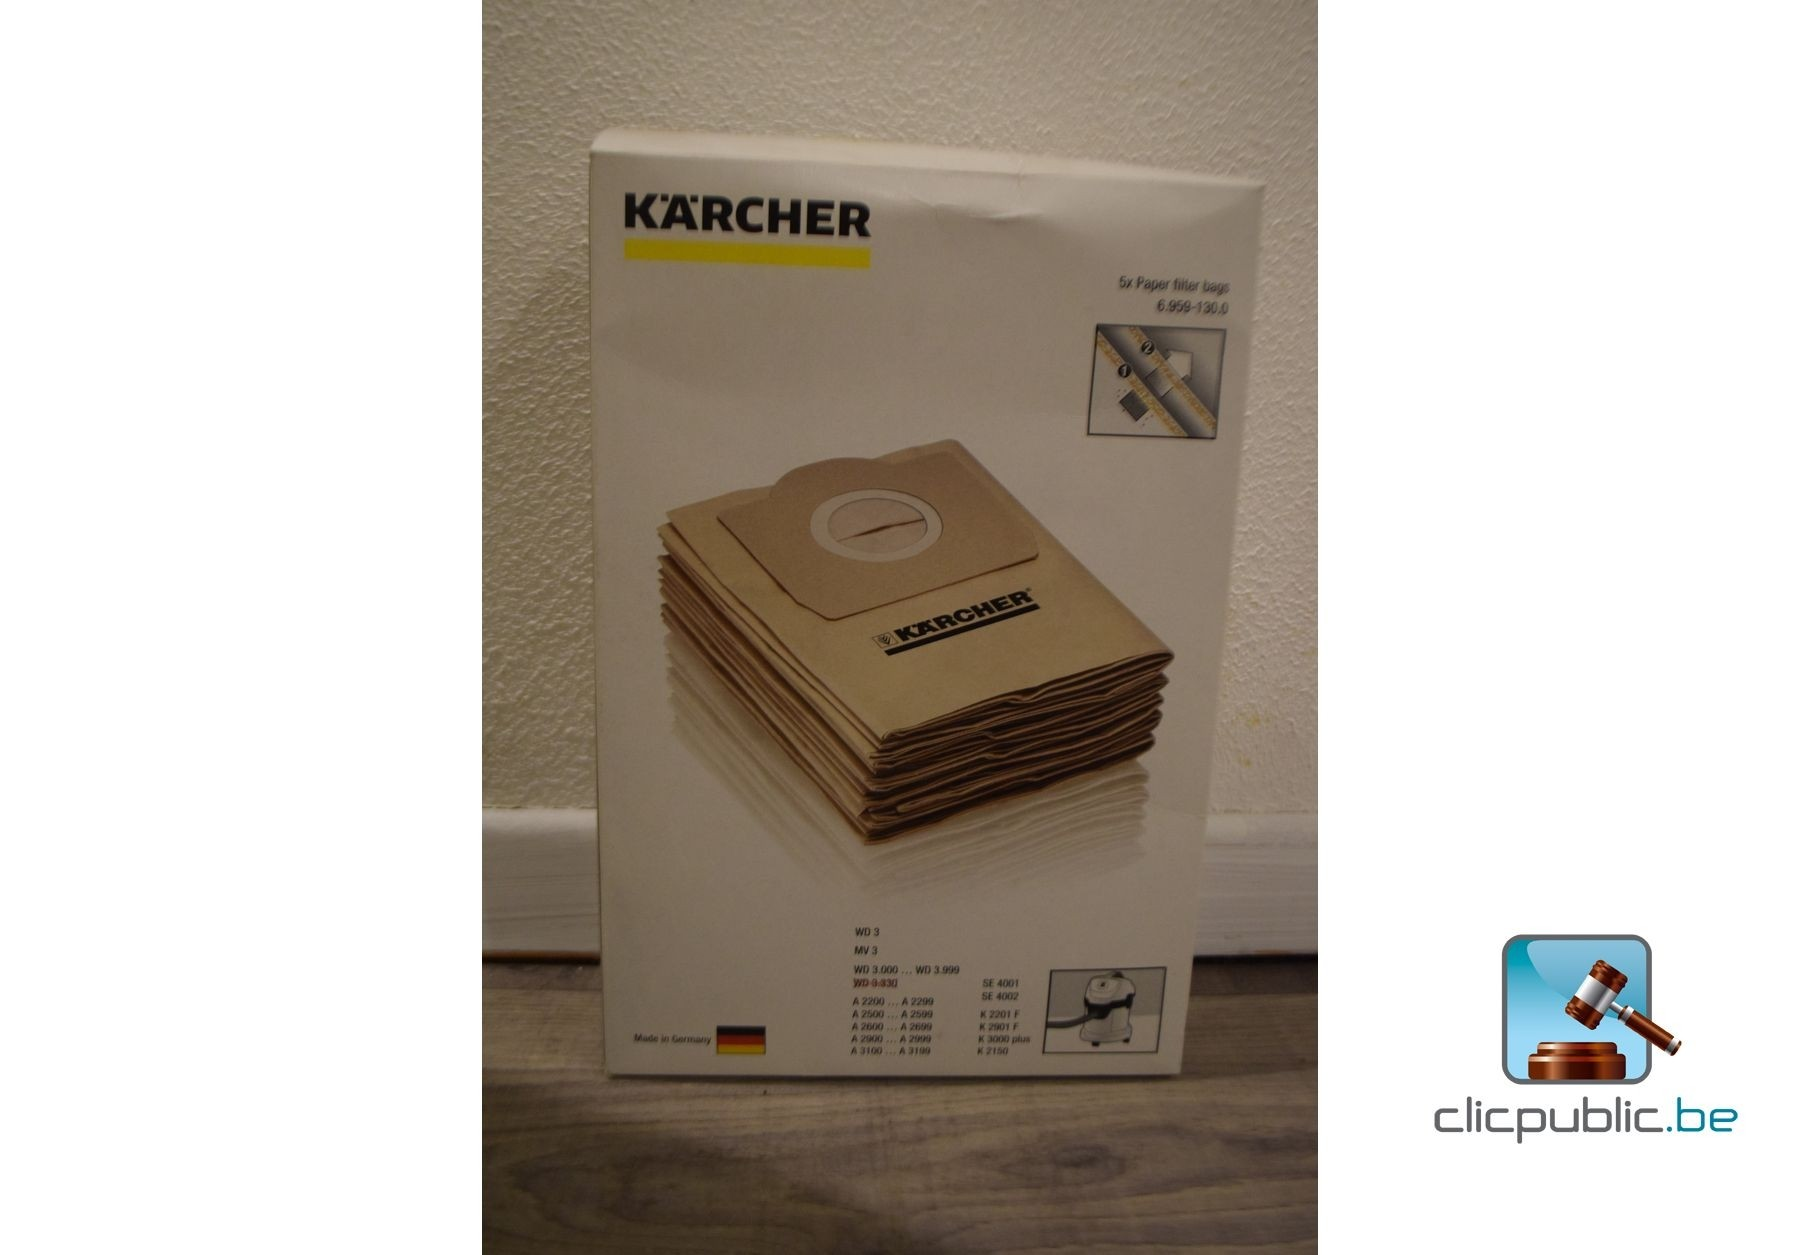 aspirateur m nager karcher wd3 premium ref 15 vendre. Black Bedroom Furniture Sets. Home Design Ideas